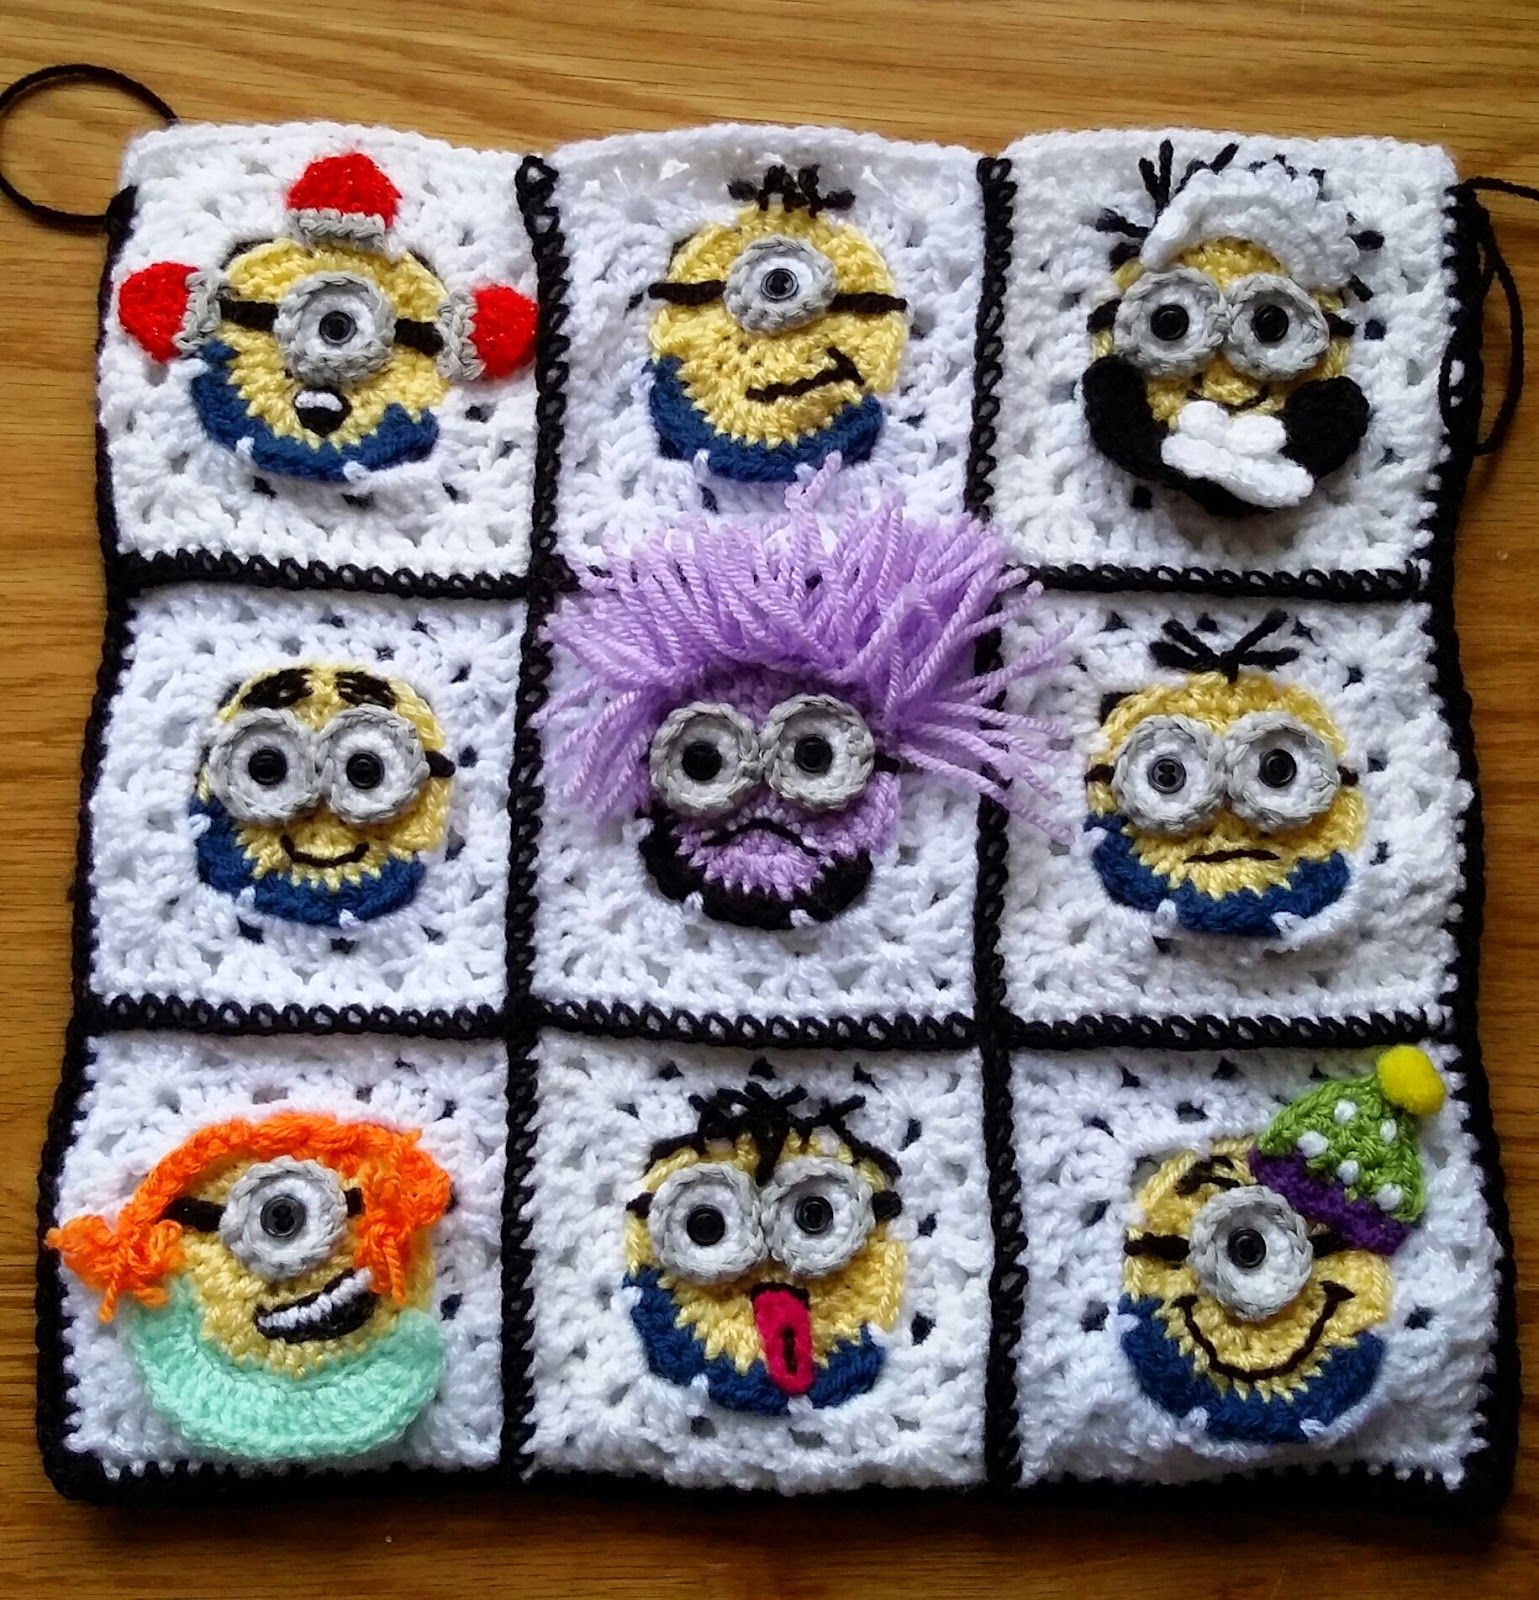 crochet minion pattern squares were made using a simple crochet minion square - embellishments and colors chosen by designer. see her site no pattern